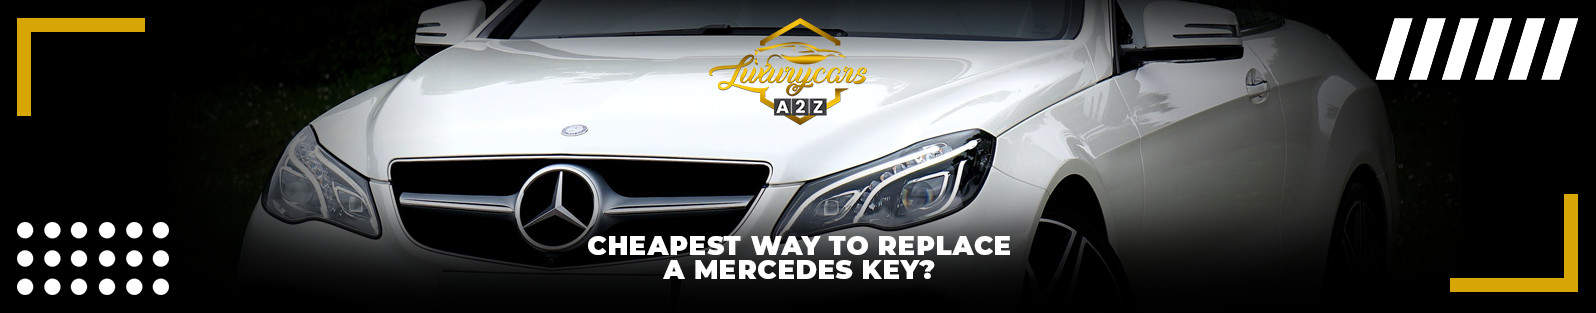 cheapest way to replace a mercedes key